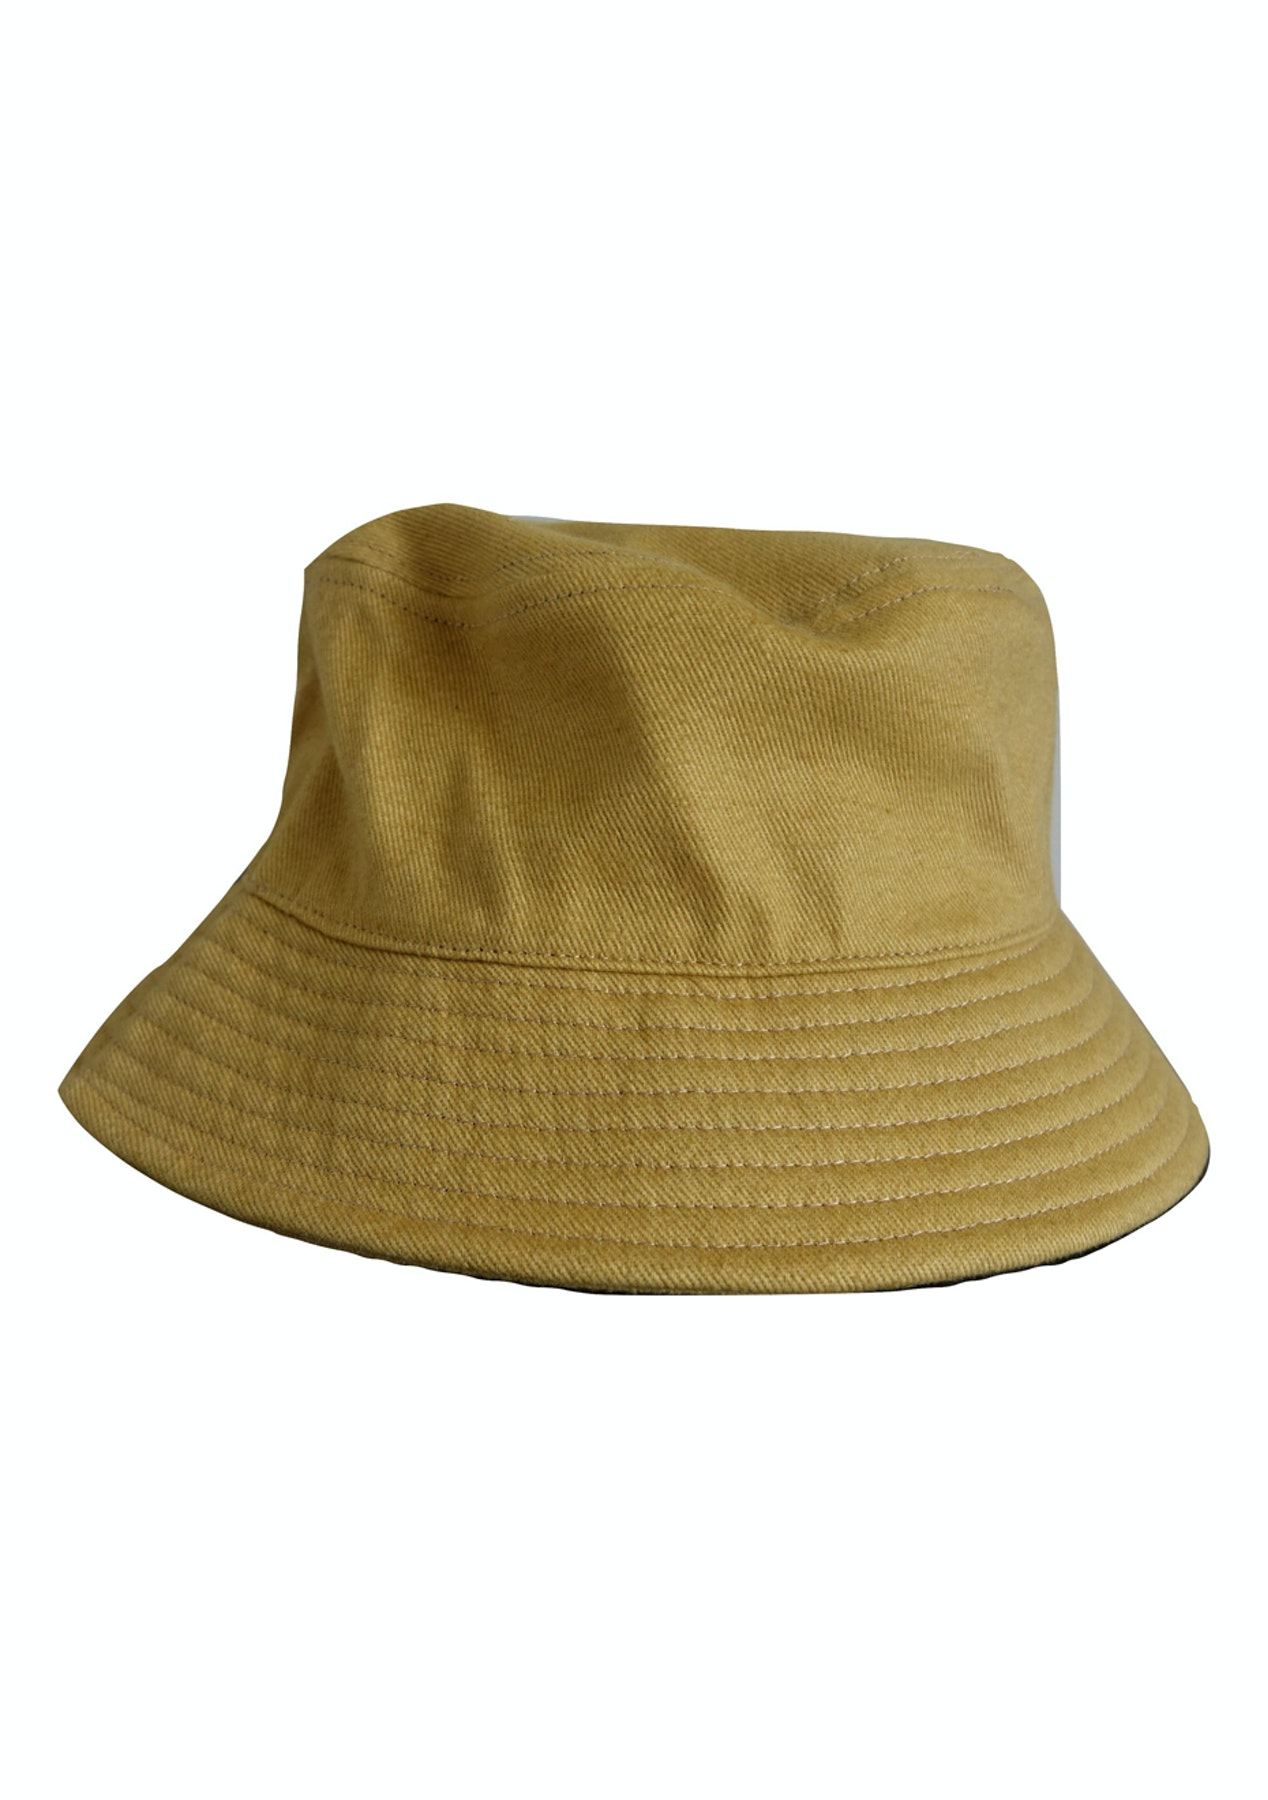 Persuade Beige Bucket Hat - Novelty Outlet - Onceit bb61984c19a